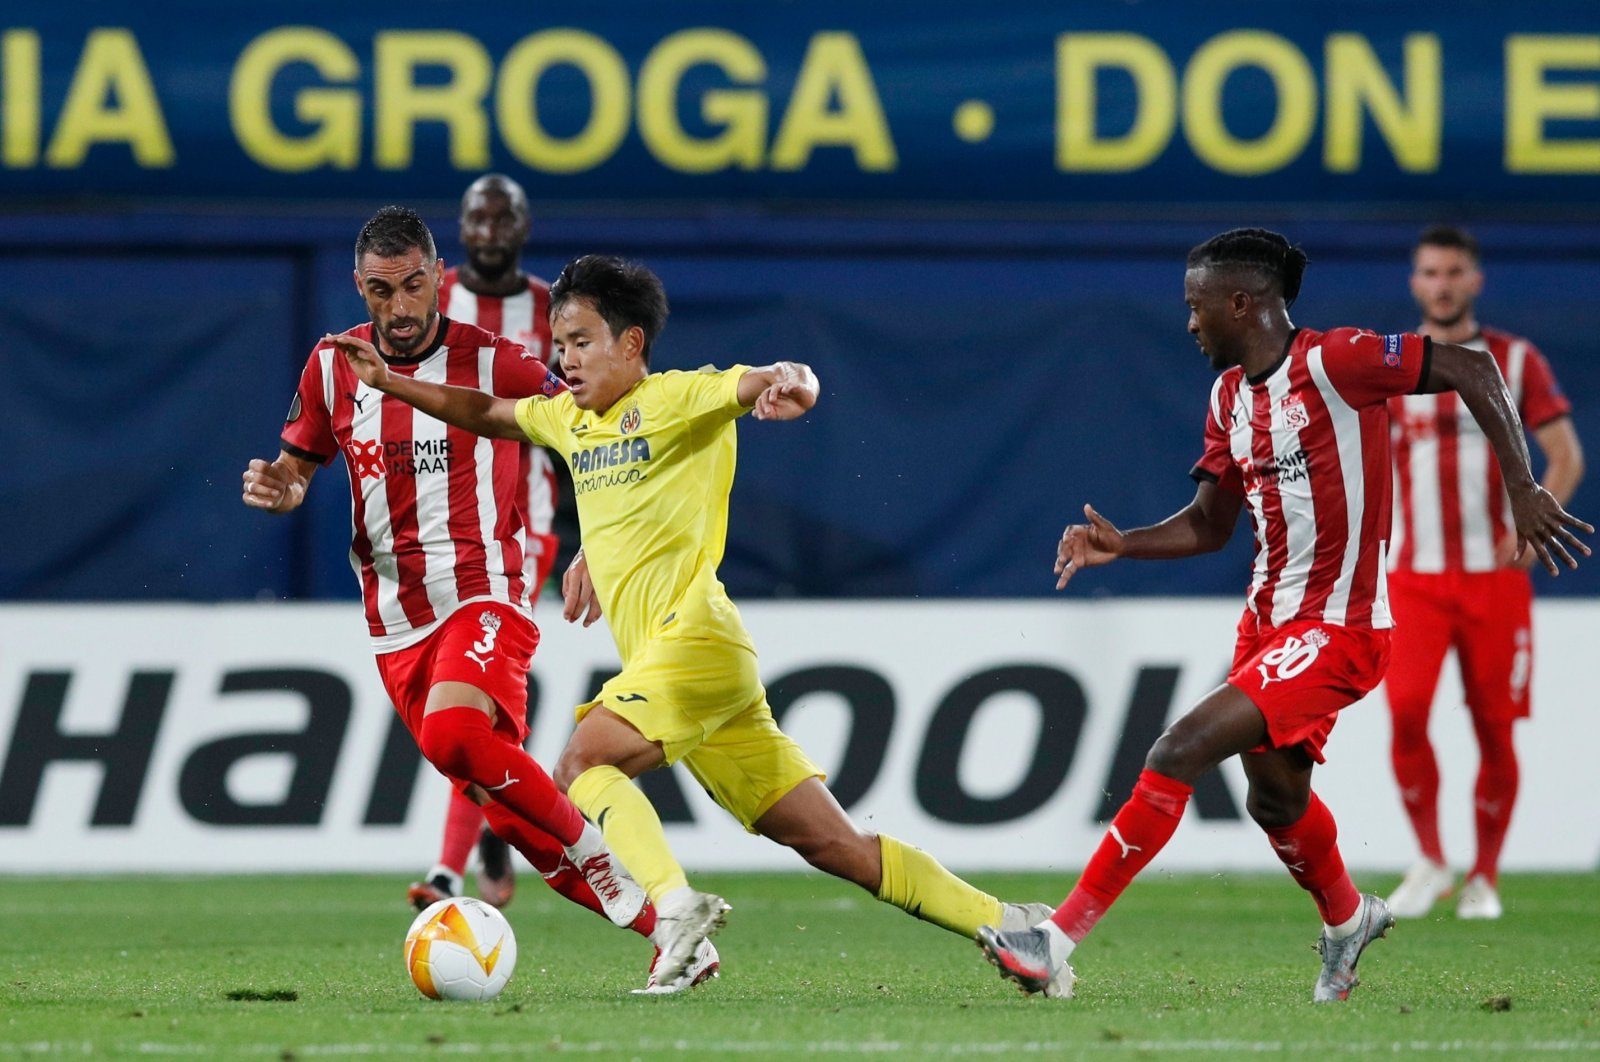 Villarreal's Takefusa Kubo (C) in action with Sivasspor's Uğur Çiftçi (L) and Olarenwaju Kayode during a UEFA Europa League match in Villareal, Spain, Oct. 22, 2020. (Reuters Photo)